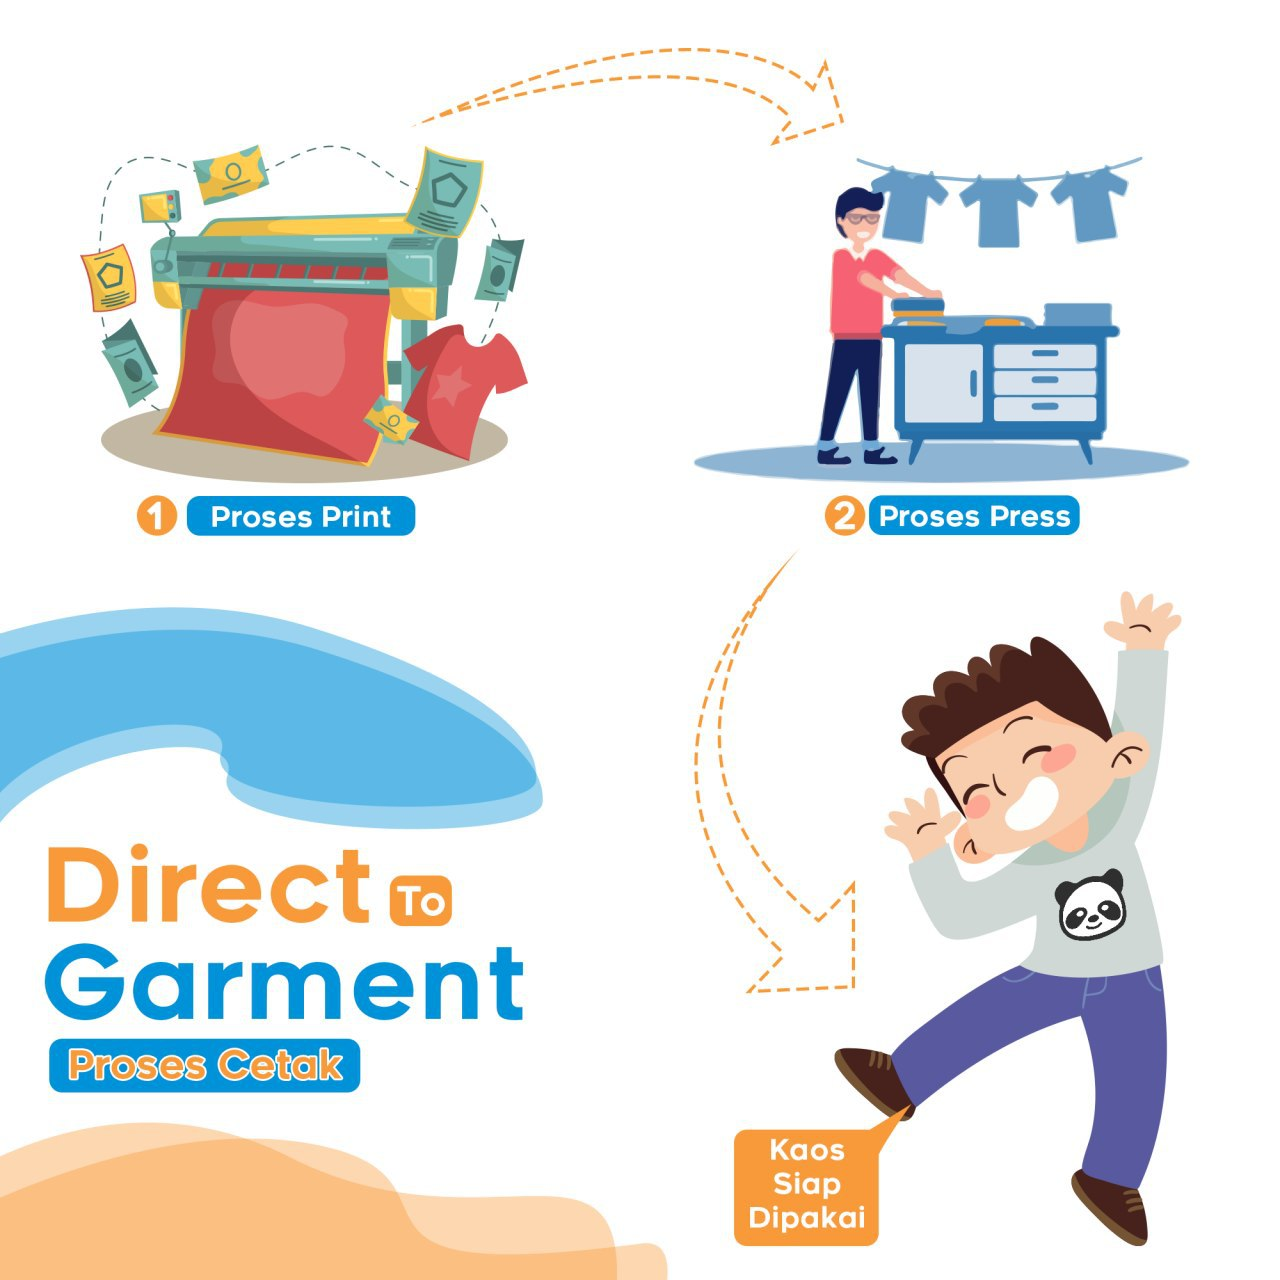 DTG Direct to Garment